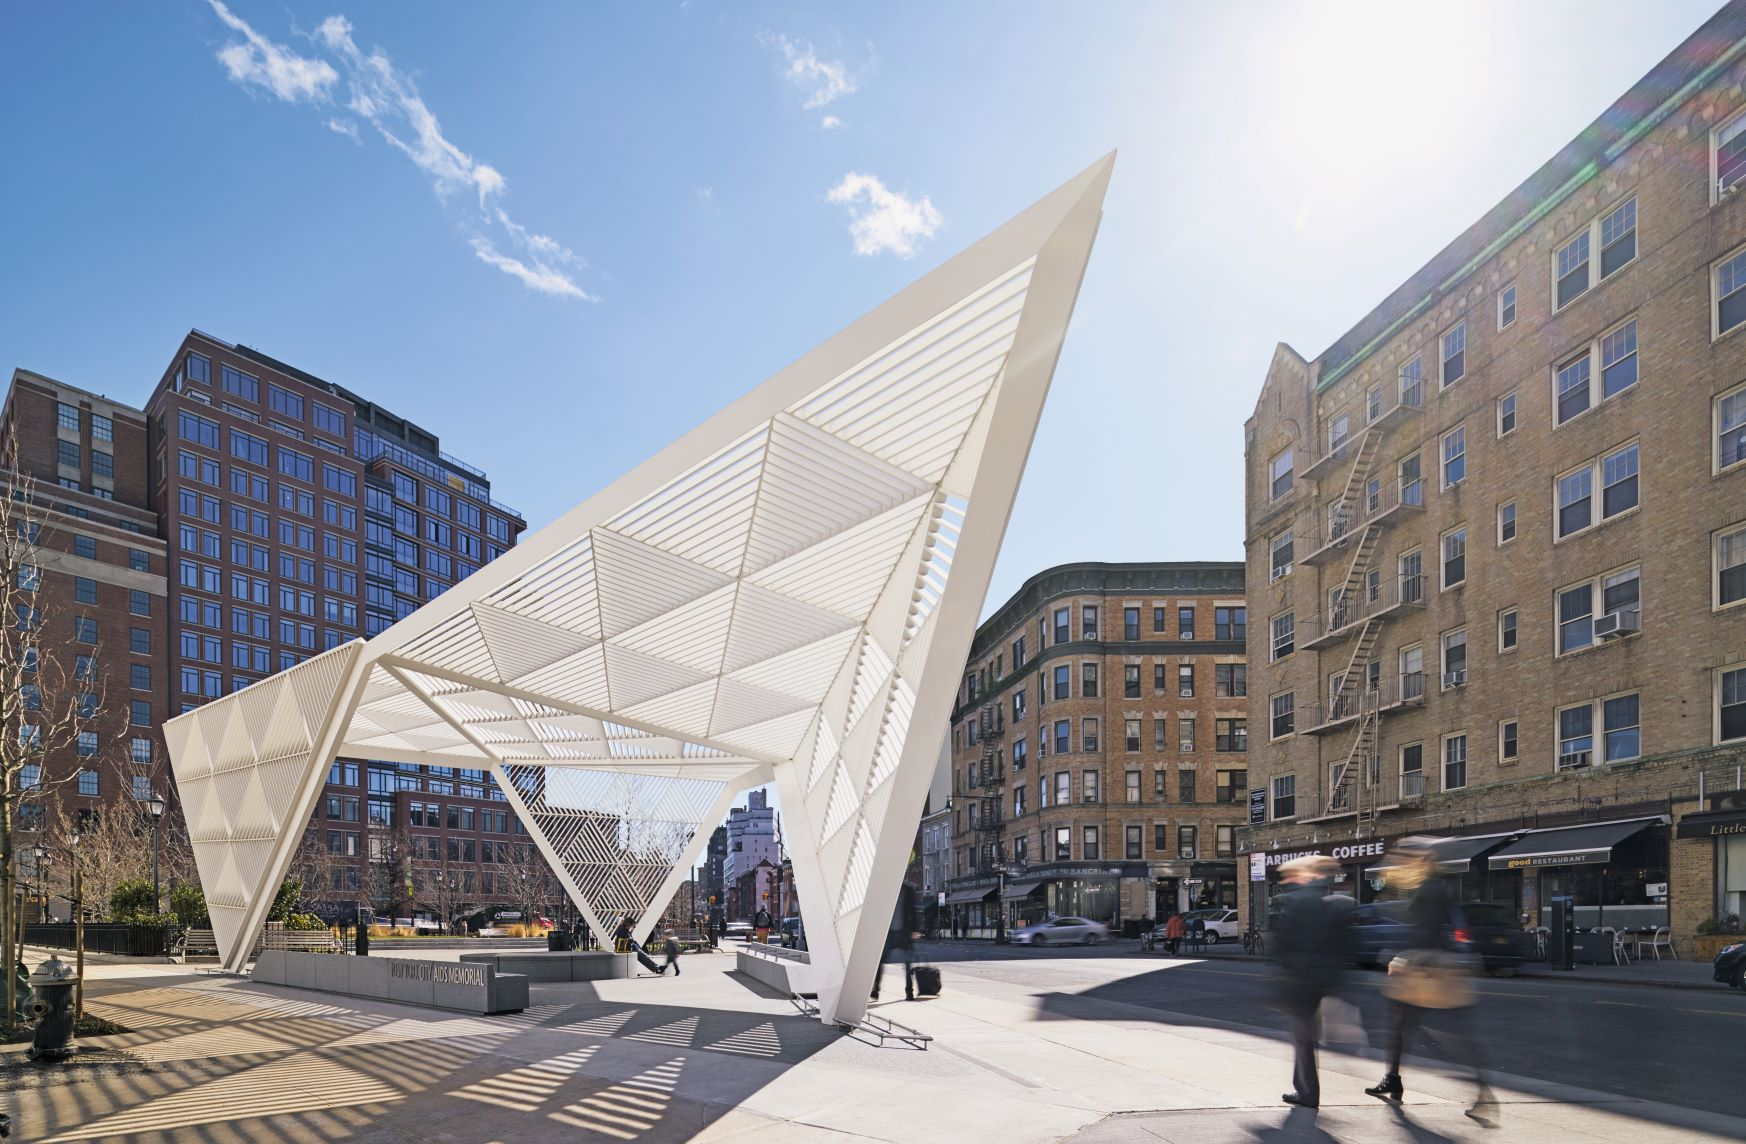 New York City AIDS Memorial, New York City, New York, USA. Studio AI Architects (2016). Photograph by Edward Caruso